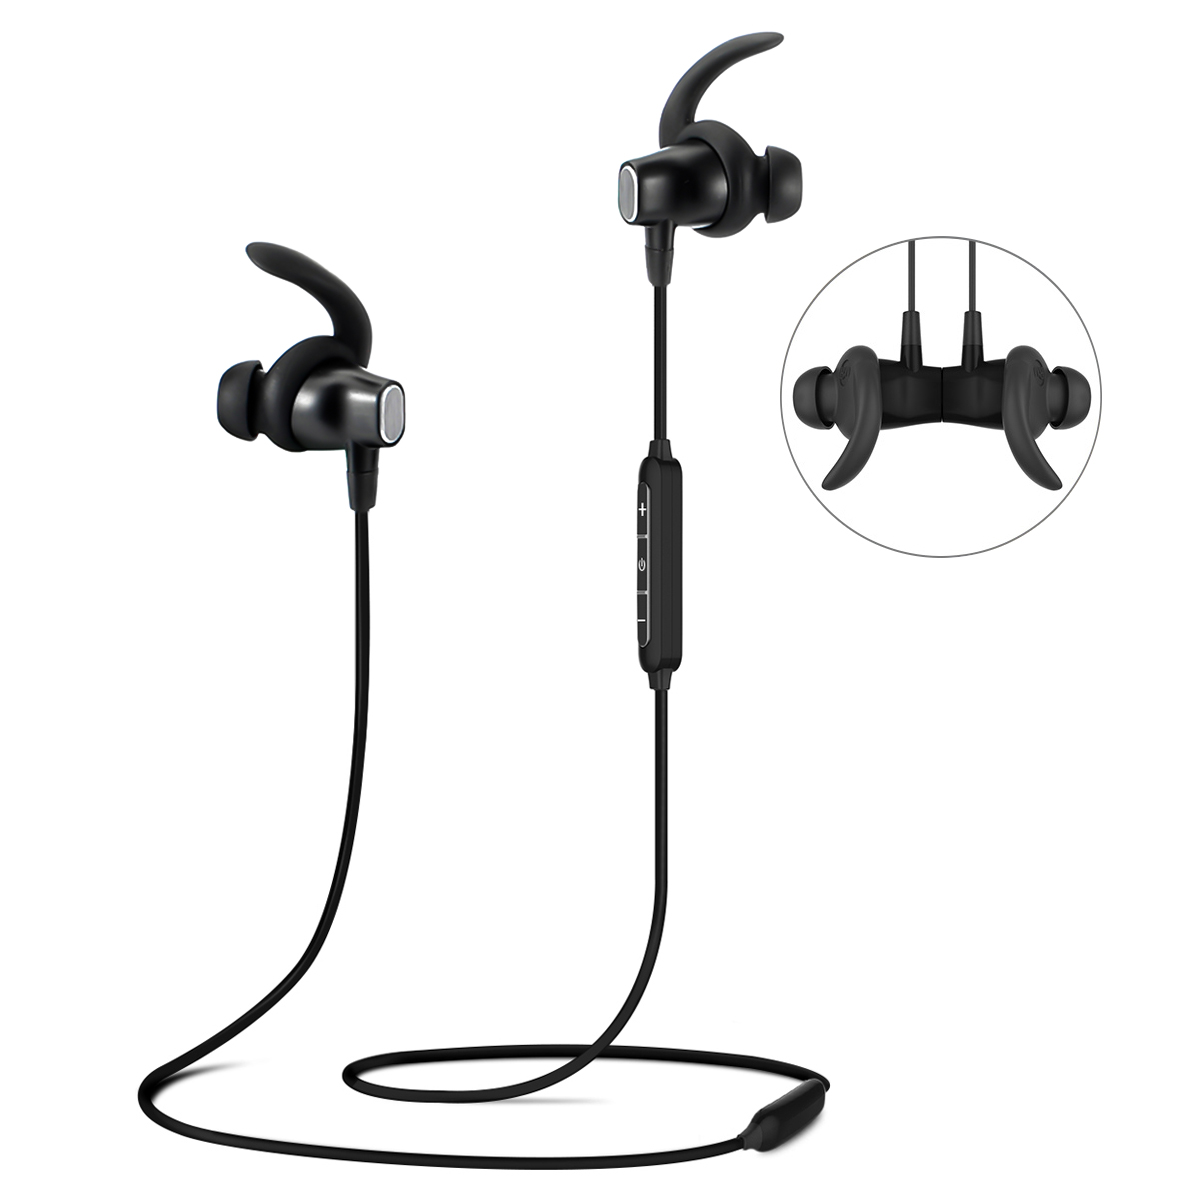 Wireless Headphones Earbuds For Sports Gym Running ,IPX6 Waterproof and Sweatproof Magnetic Secure-Fit Headset Noise Cancelling Earphones with Mic